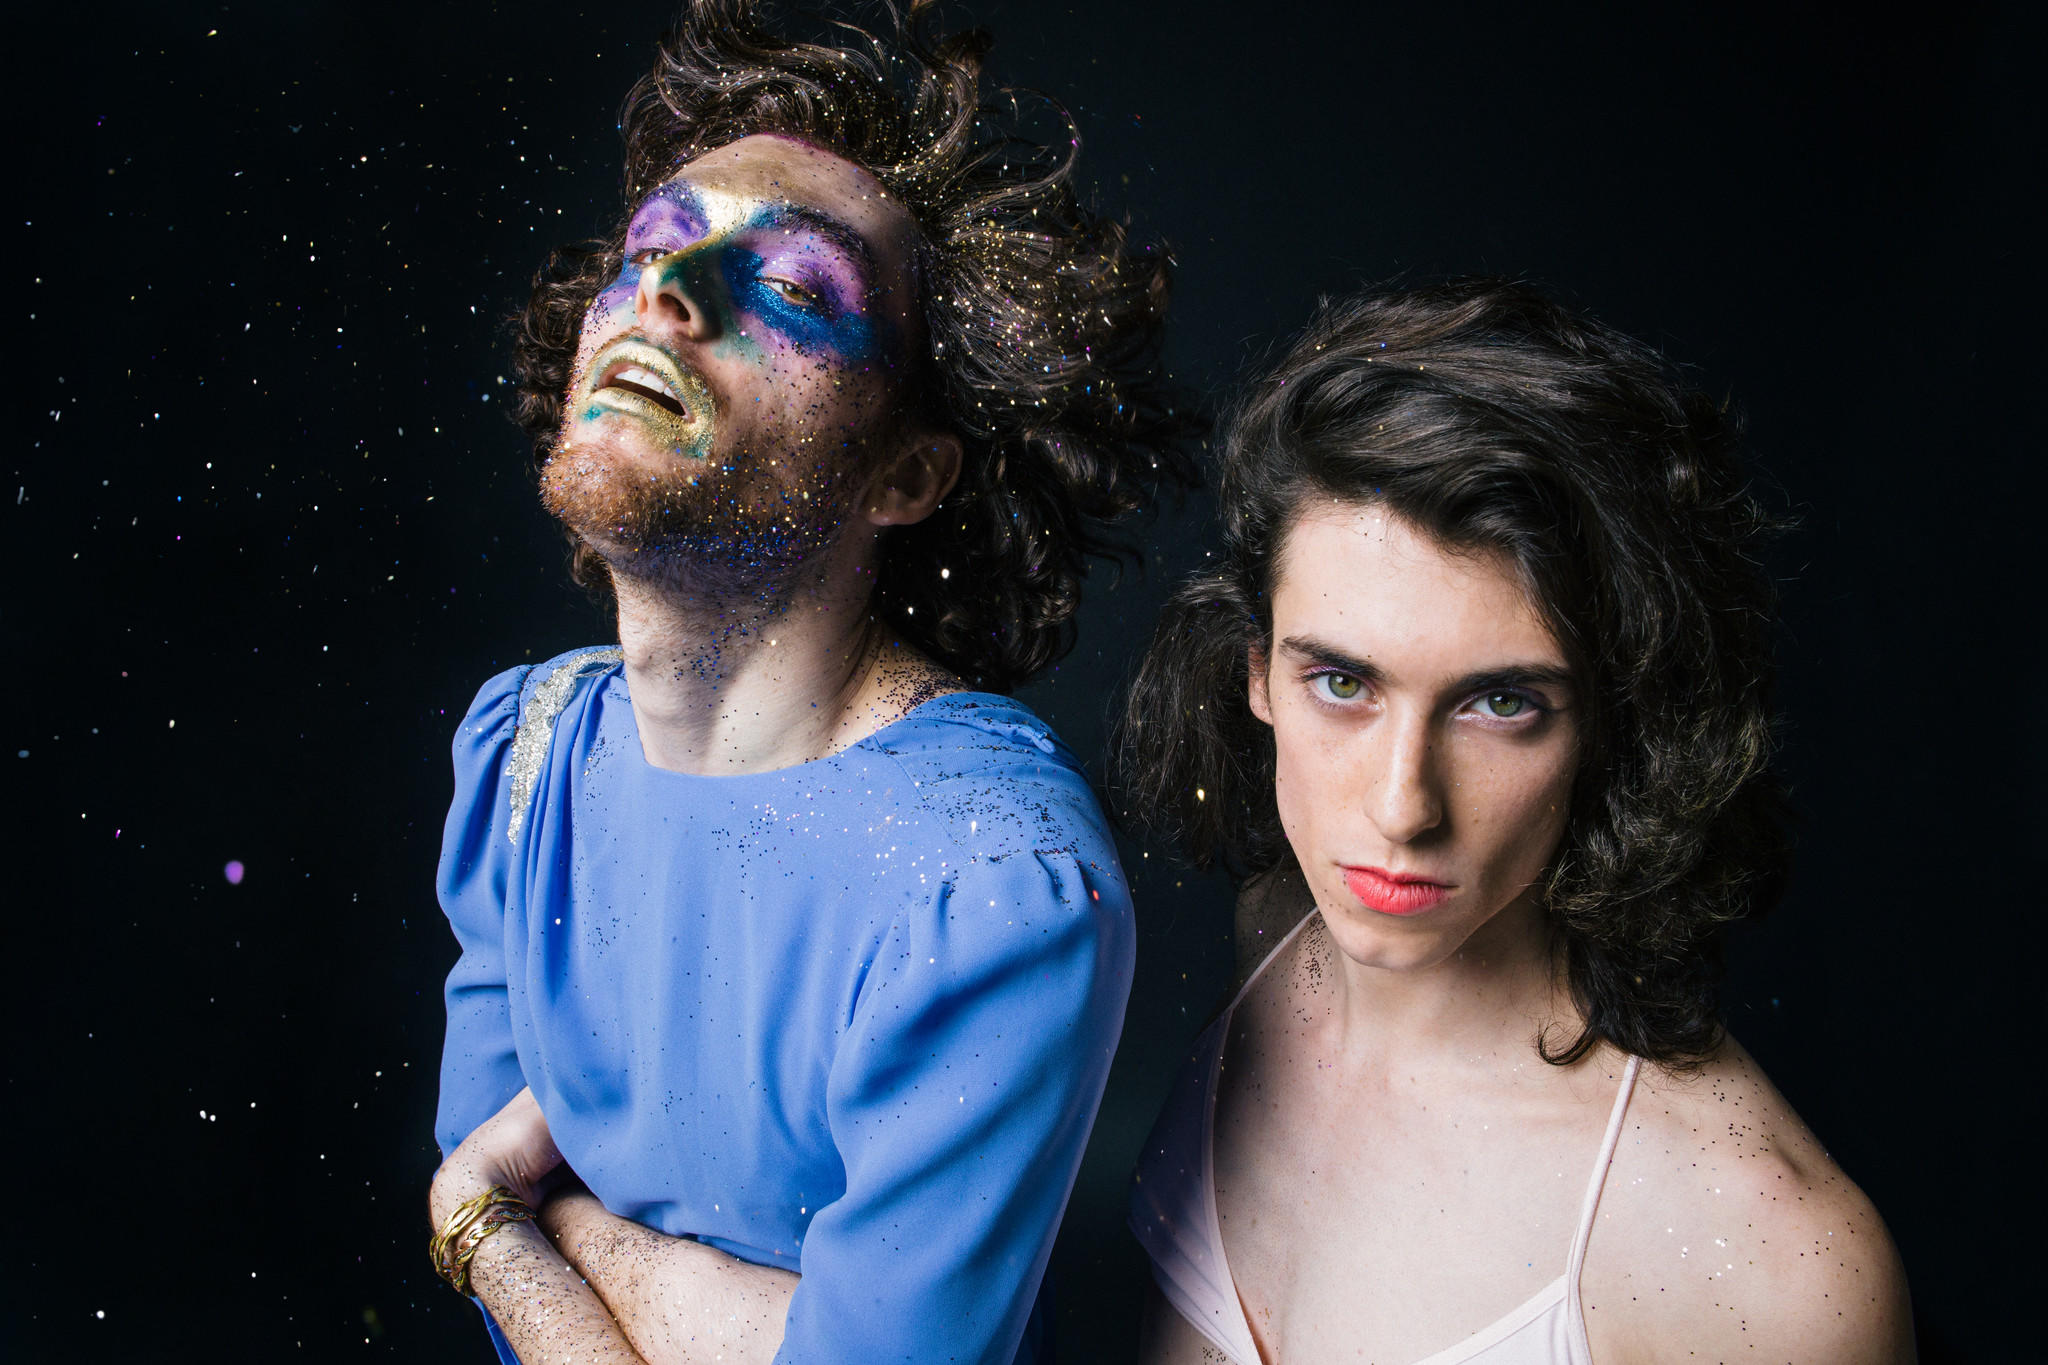 PWR BTTM band members Ben Hopkins, left, and Liv Bruce are shown. (Ebru Yildiz)